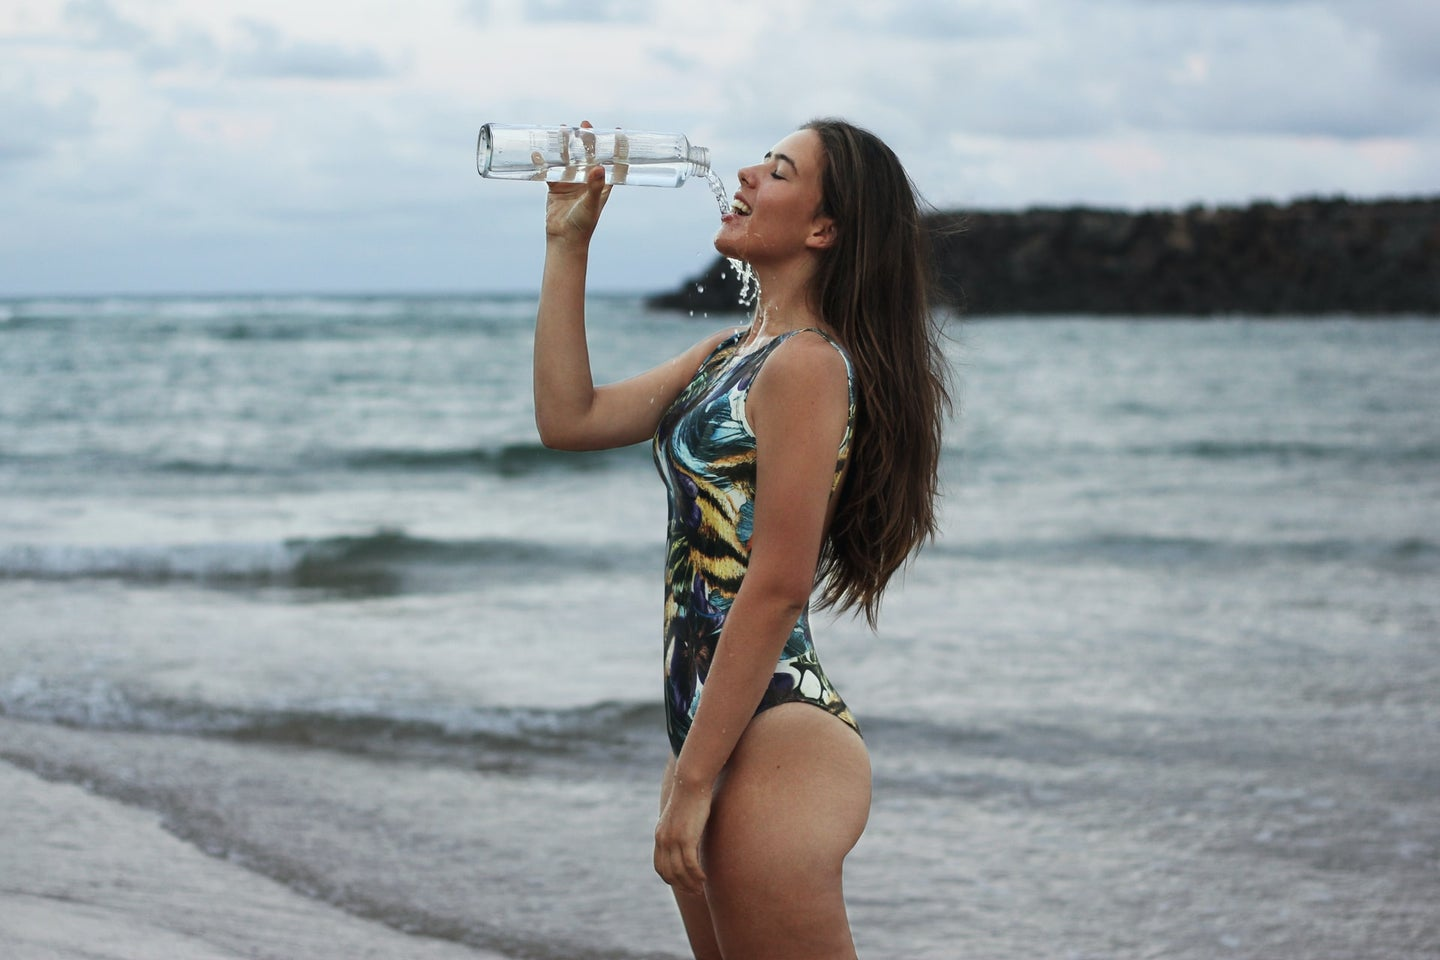 Person in blue swimsuit and long brown hair pouring water out of a clear bottle at the beach